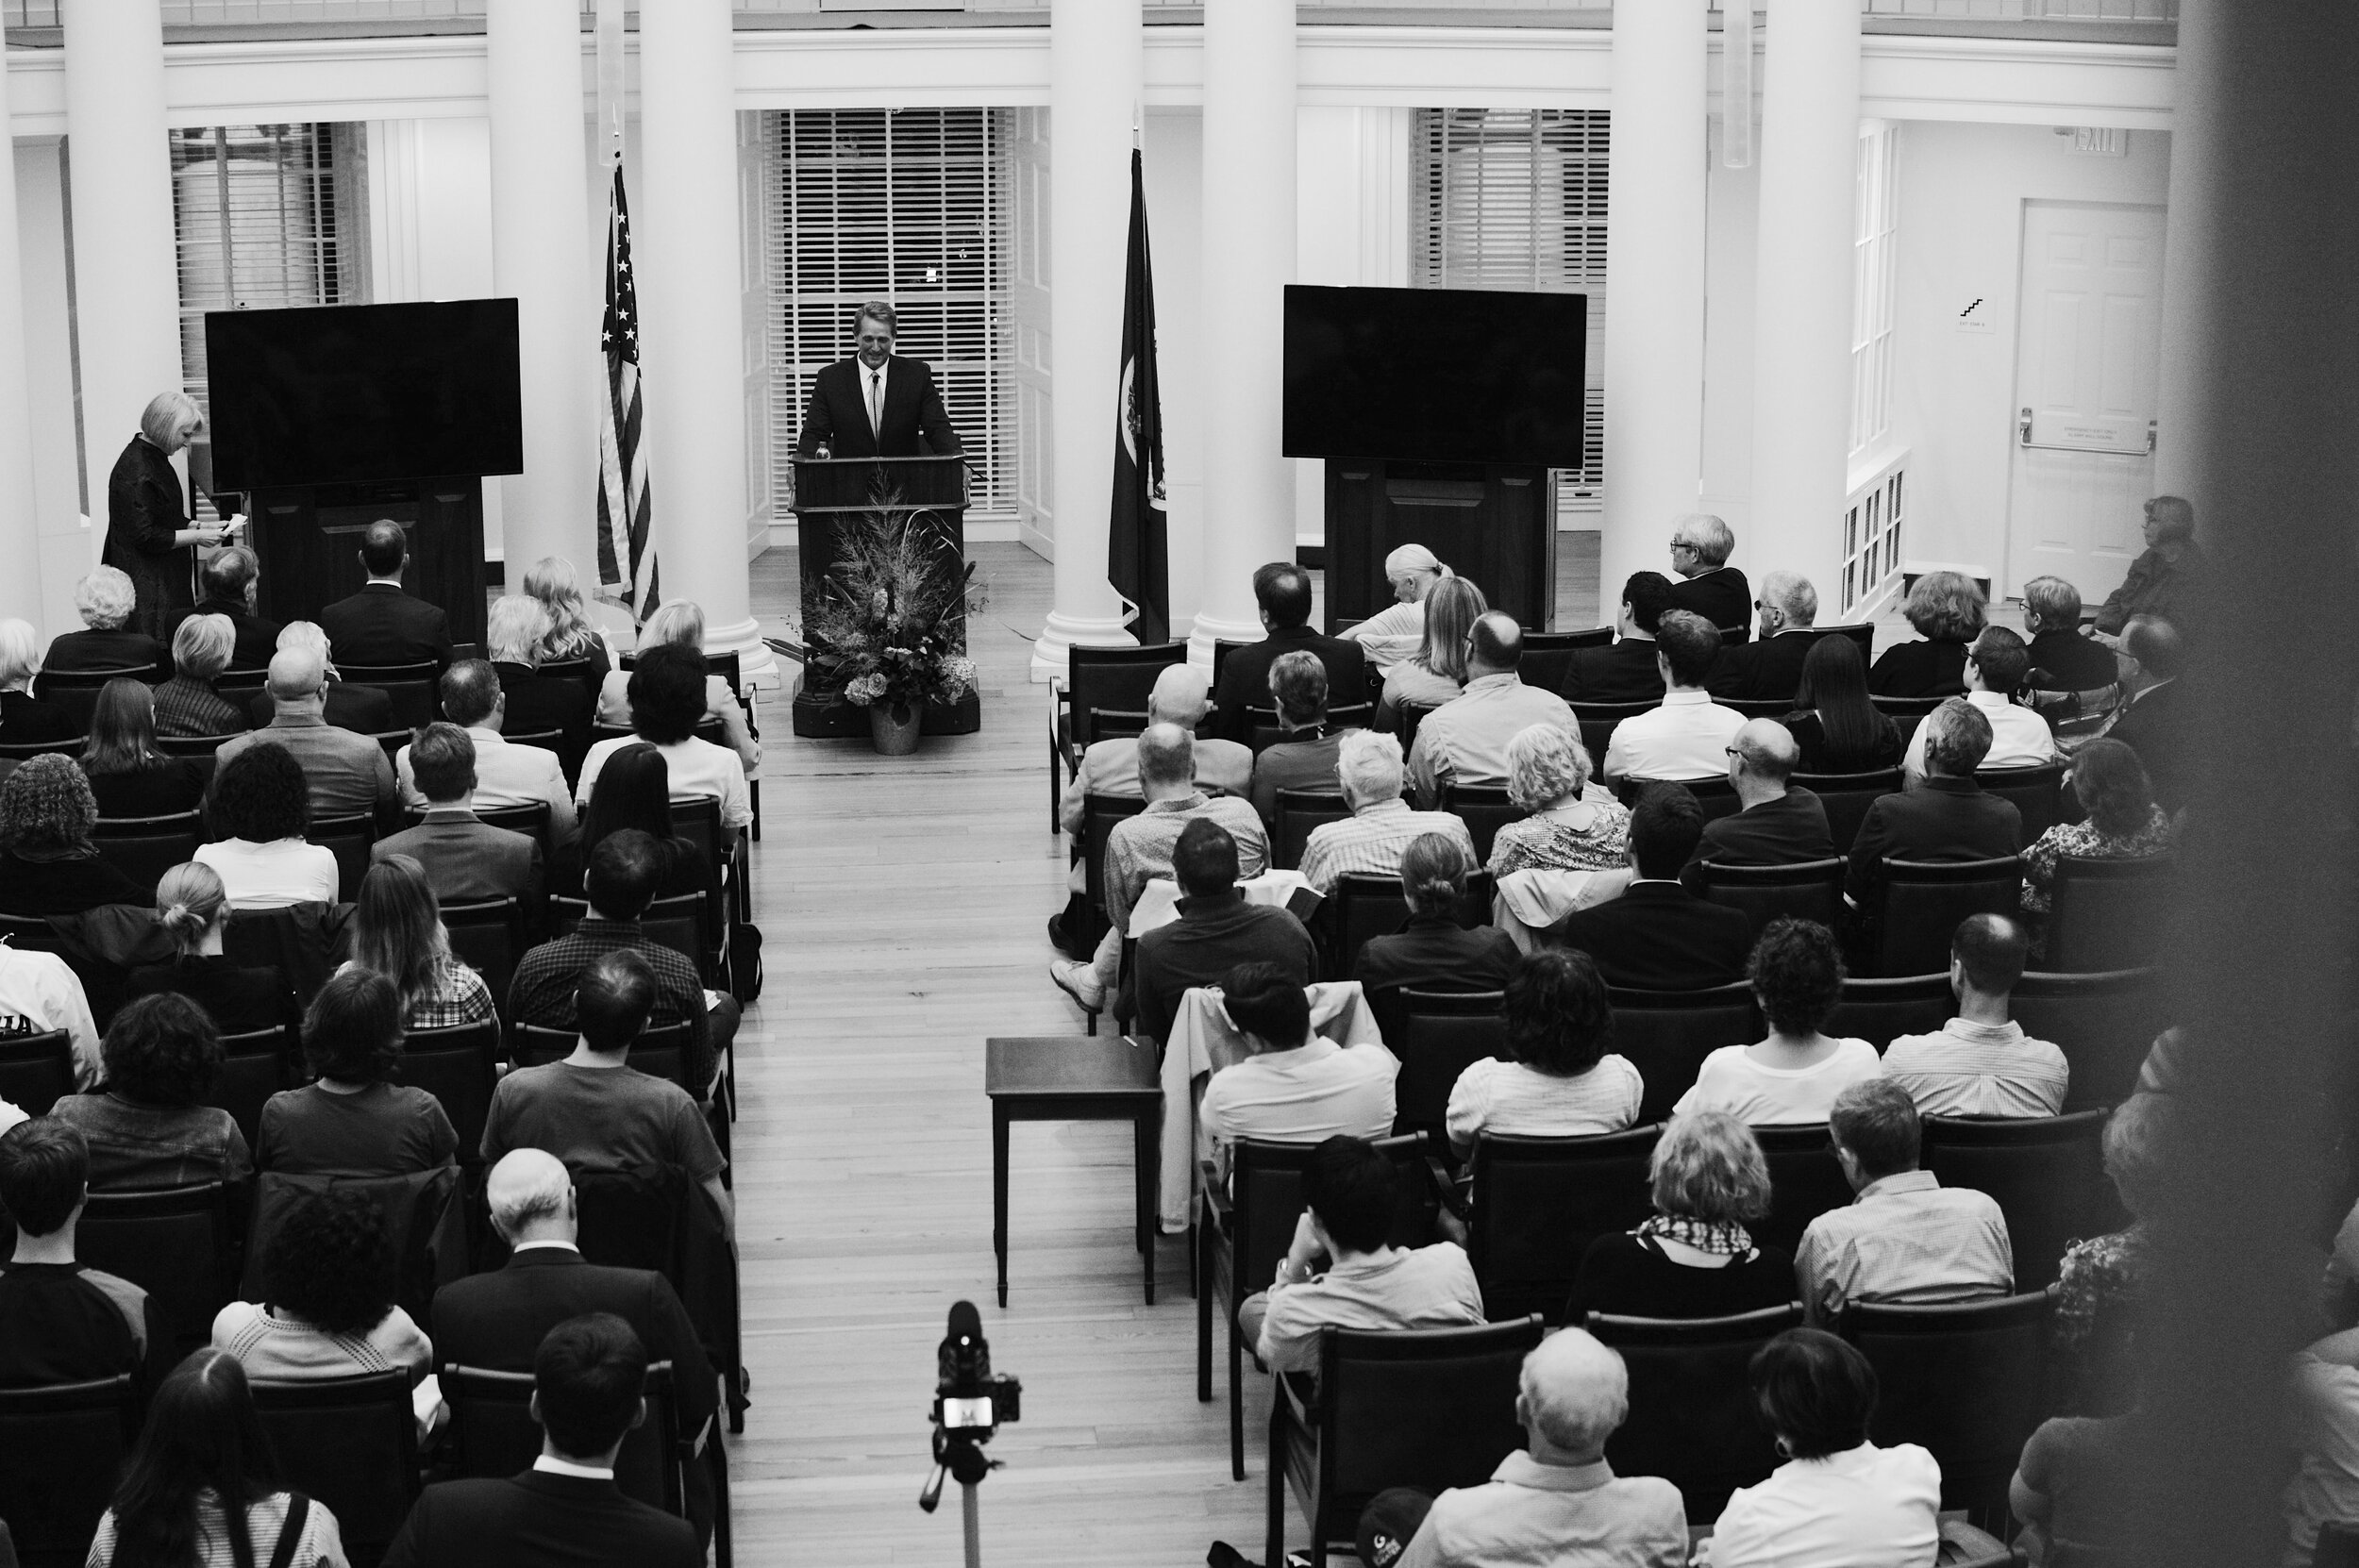 Retired Senator Jeff Flake delivers his lecture on civility in public discourse in the Rotunda Dome Room. Photo Credit Michael Schmid '21.